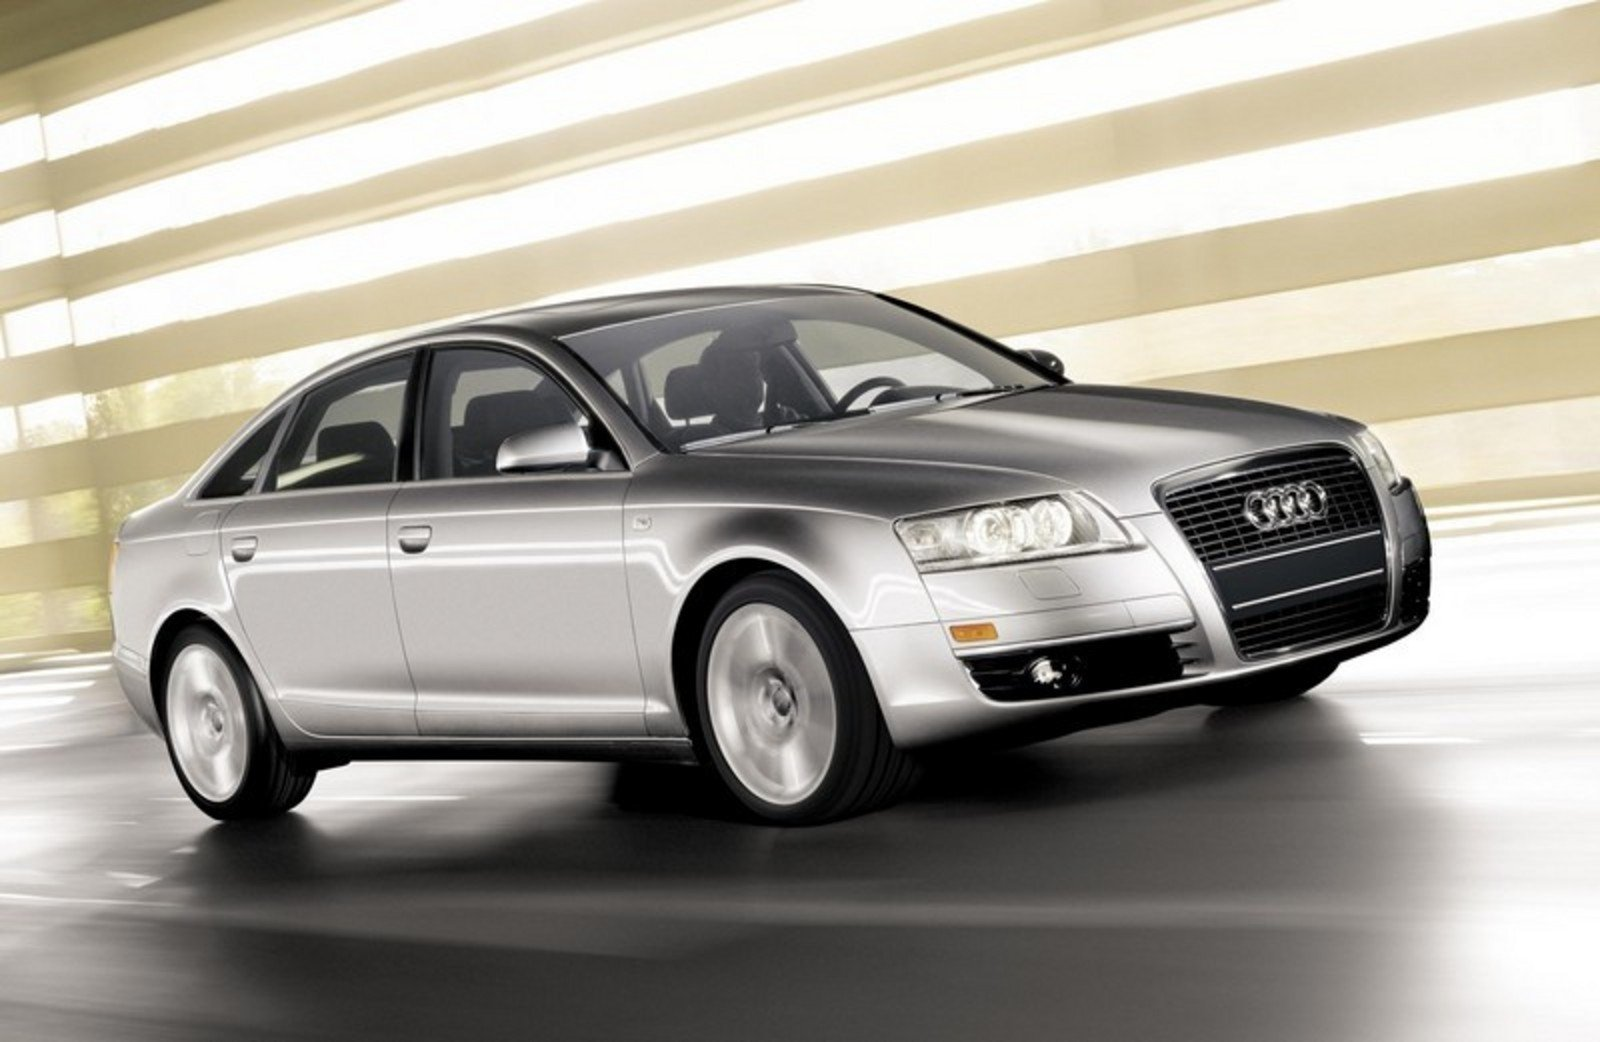 2006 audi a6 sedan picture 45276 car review top speed. Black Bedroom Furniture Sets. Home Design Ideas